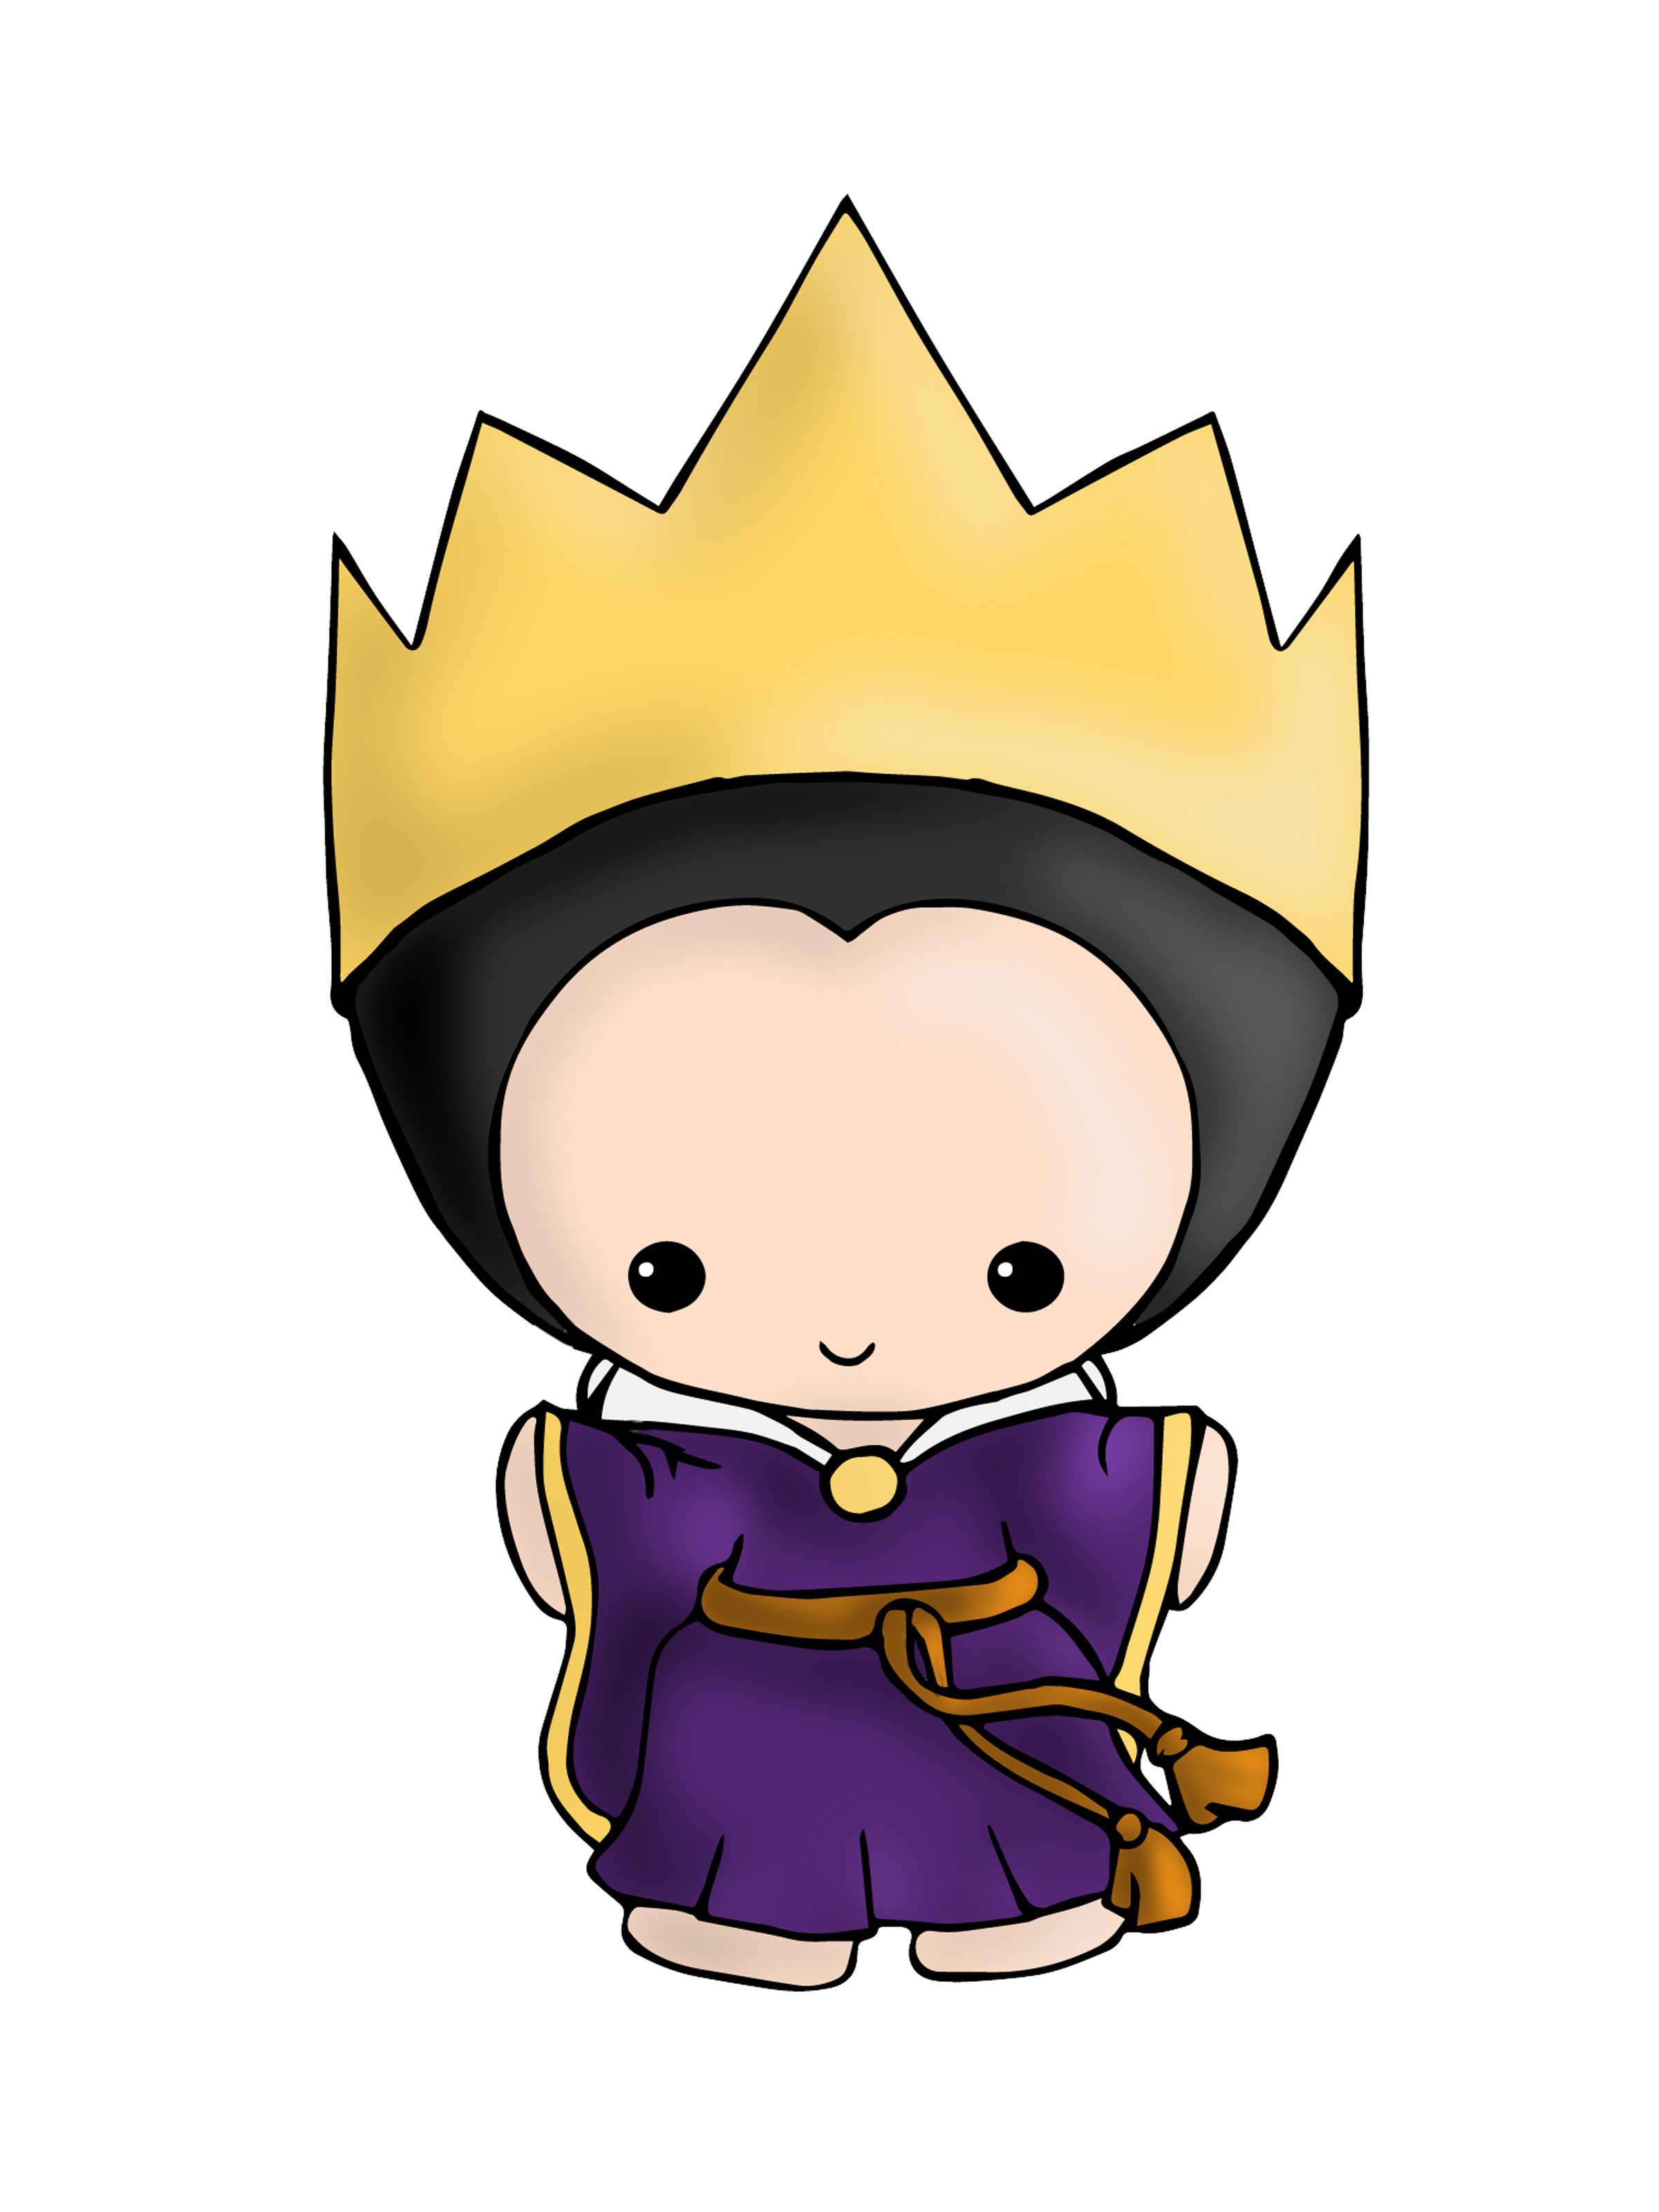 Evil queen clipart crown picture royalty free library Evil Queen! Available on Shirts and Stickers here: http://www ... picture royalty free library